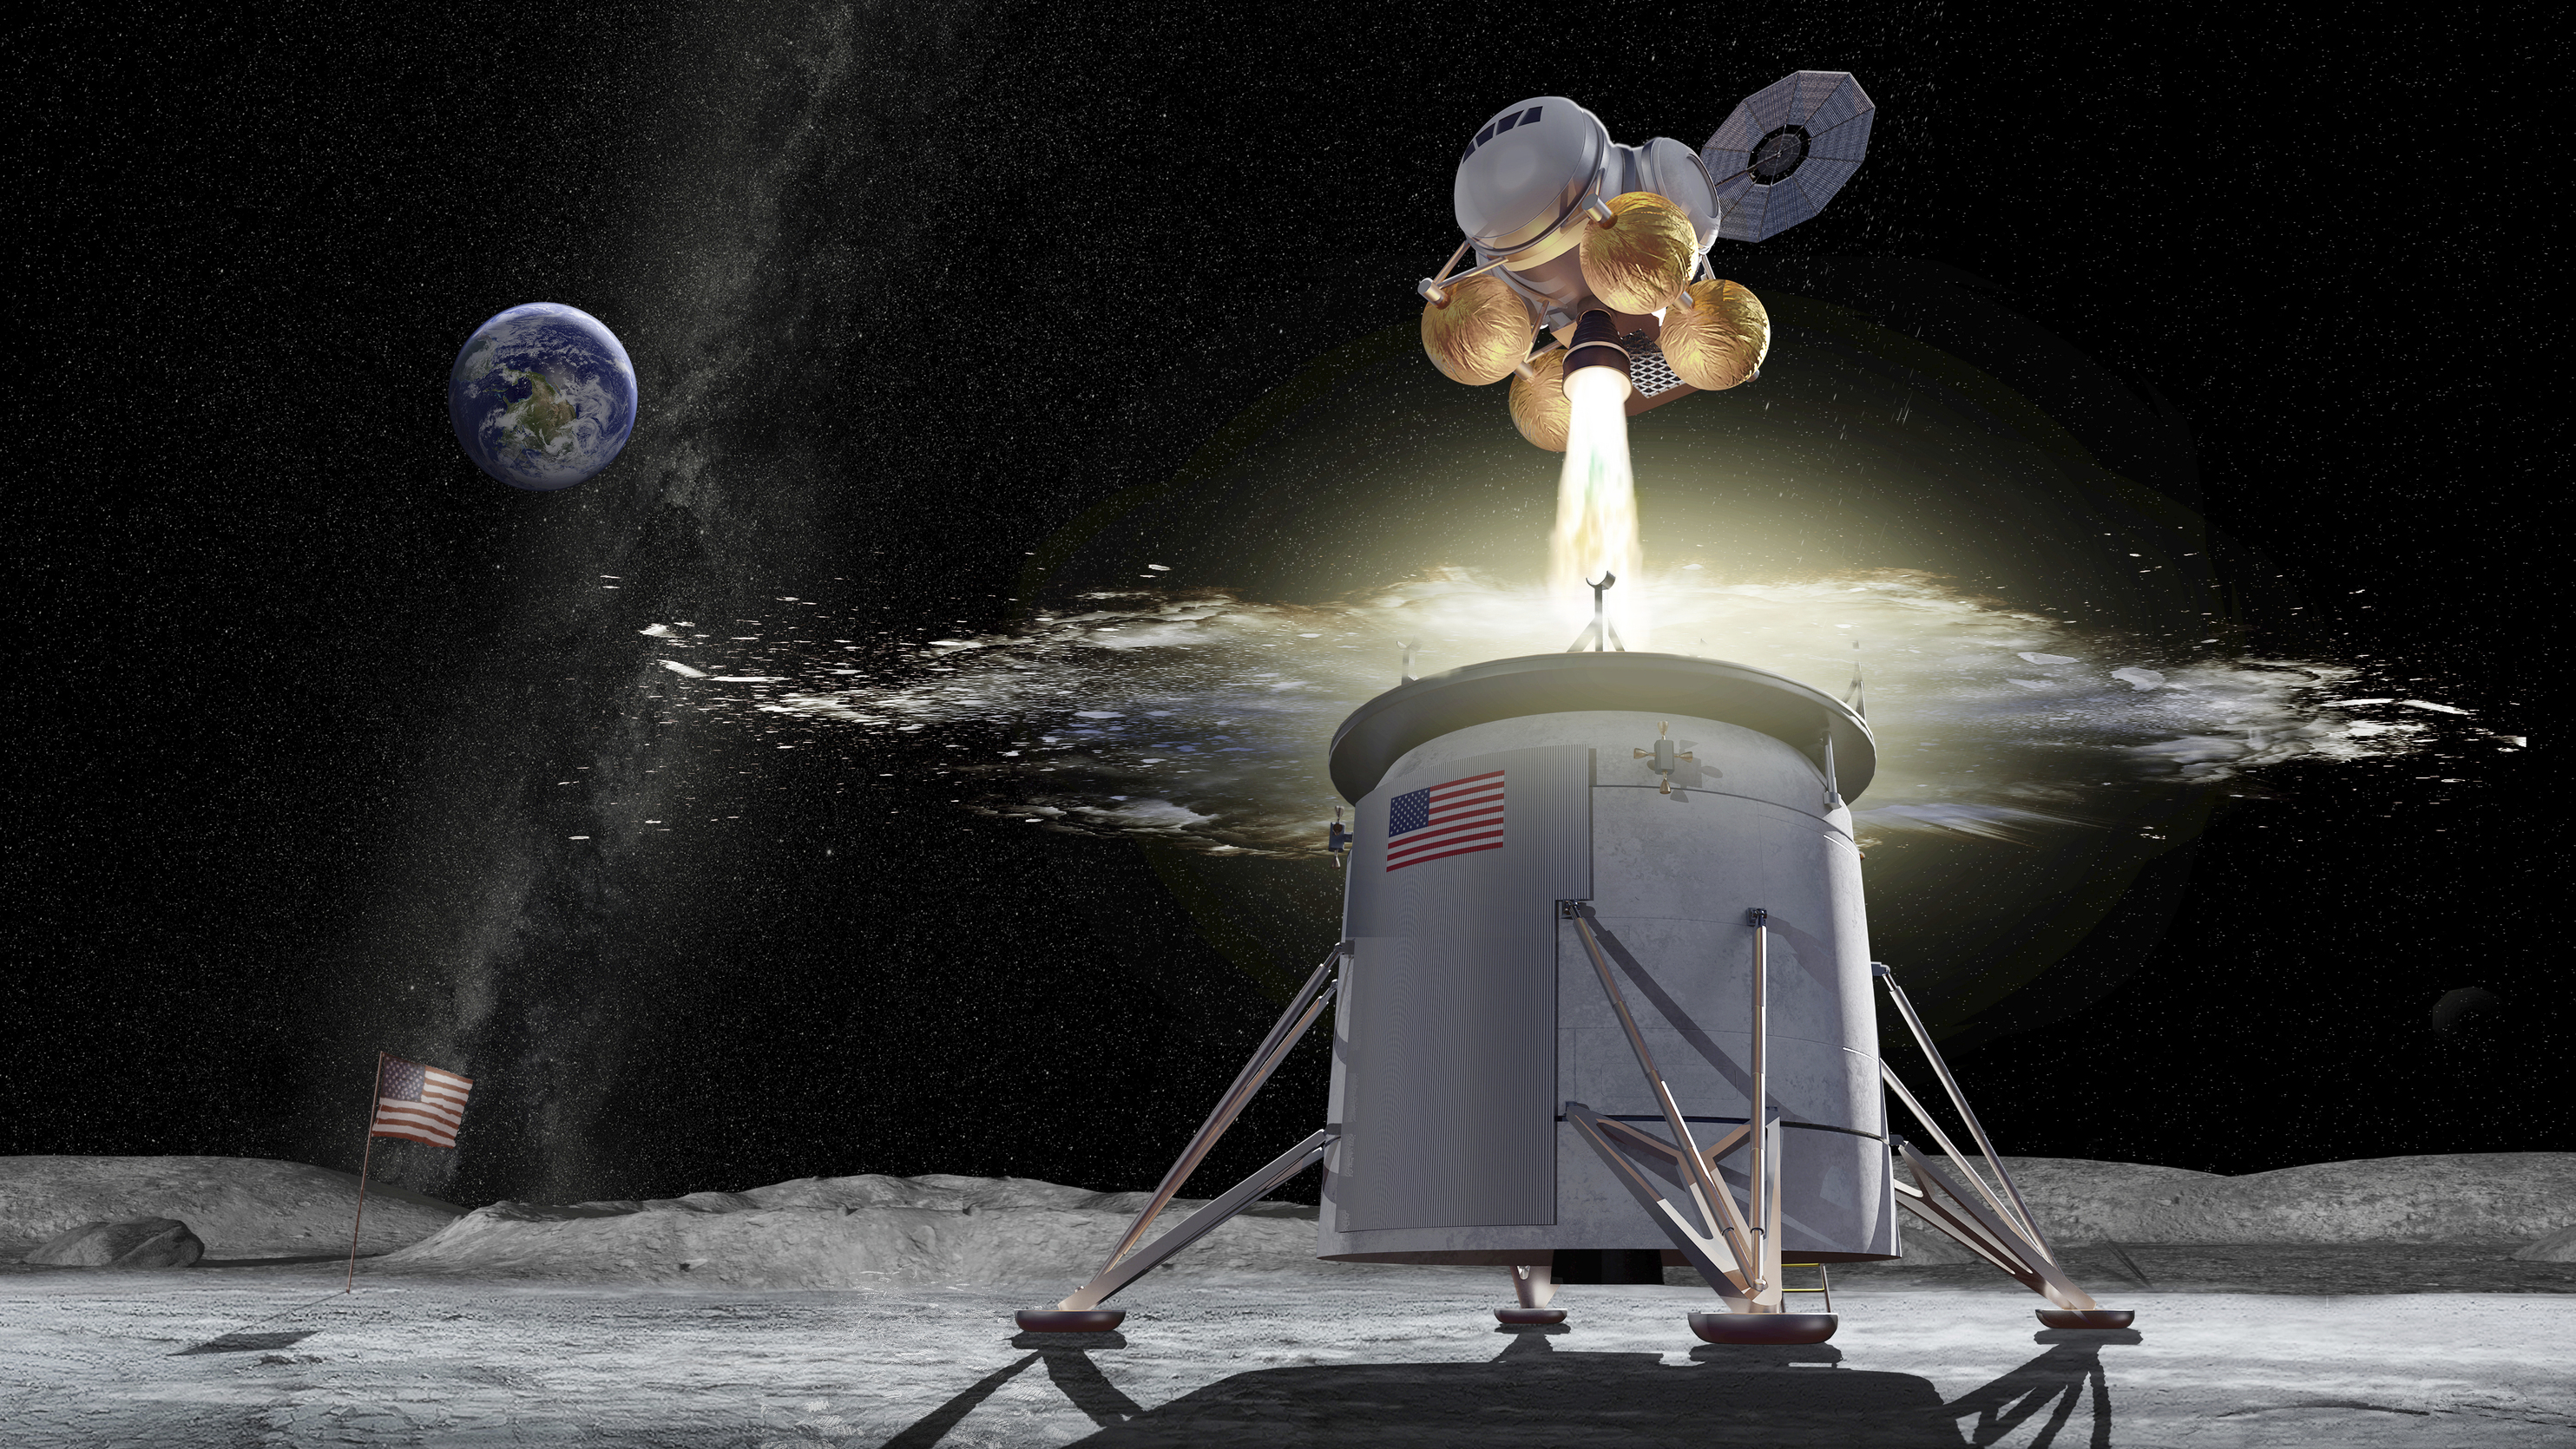 How NASA envisioned the moon lander working out.